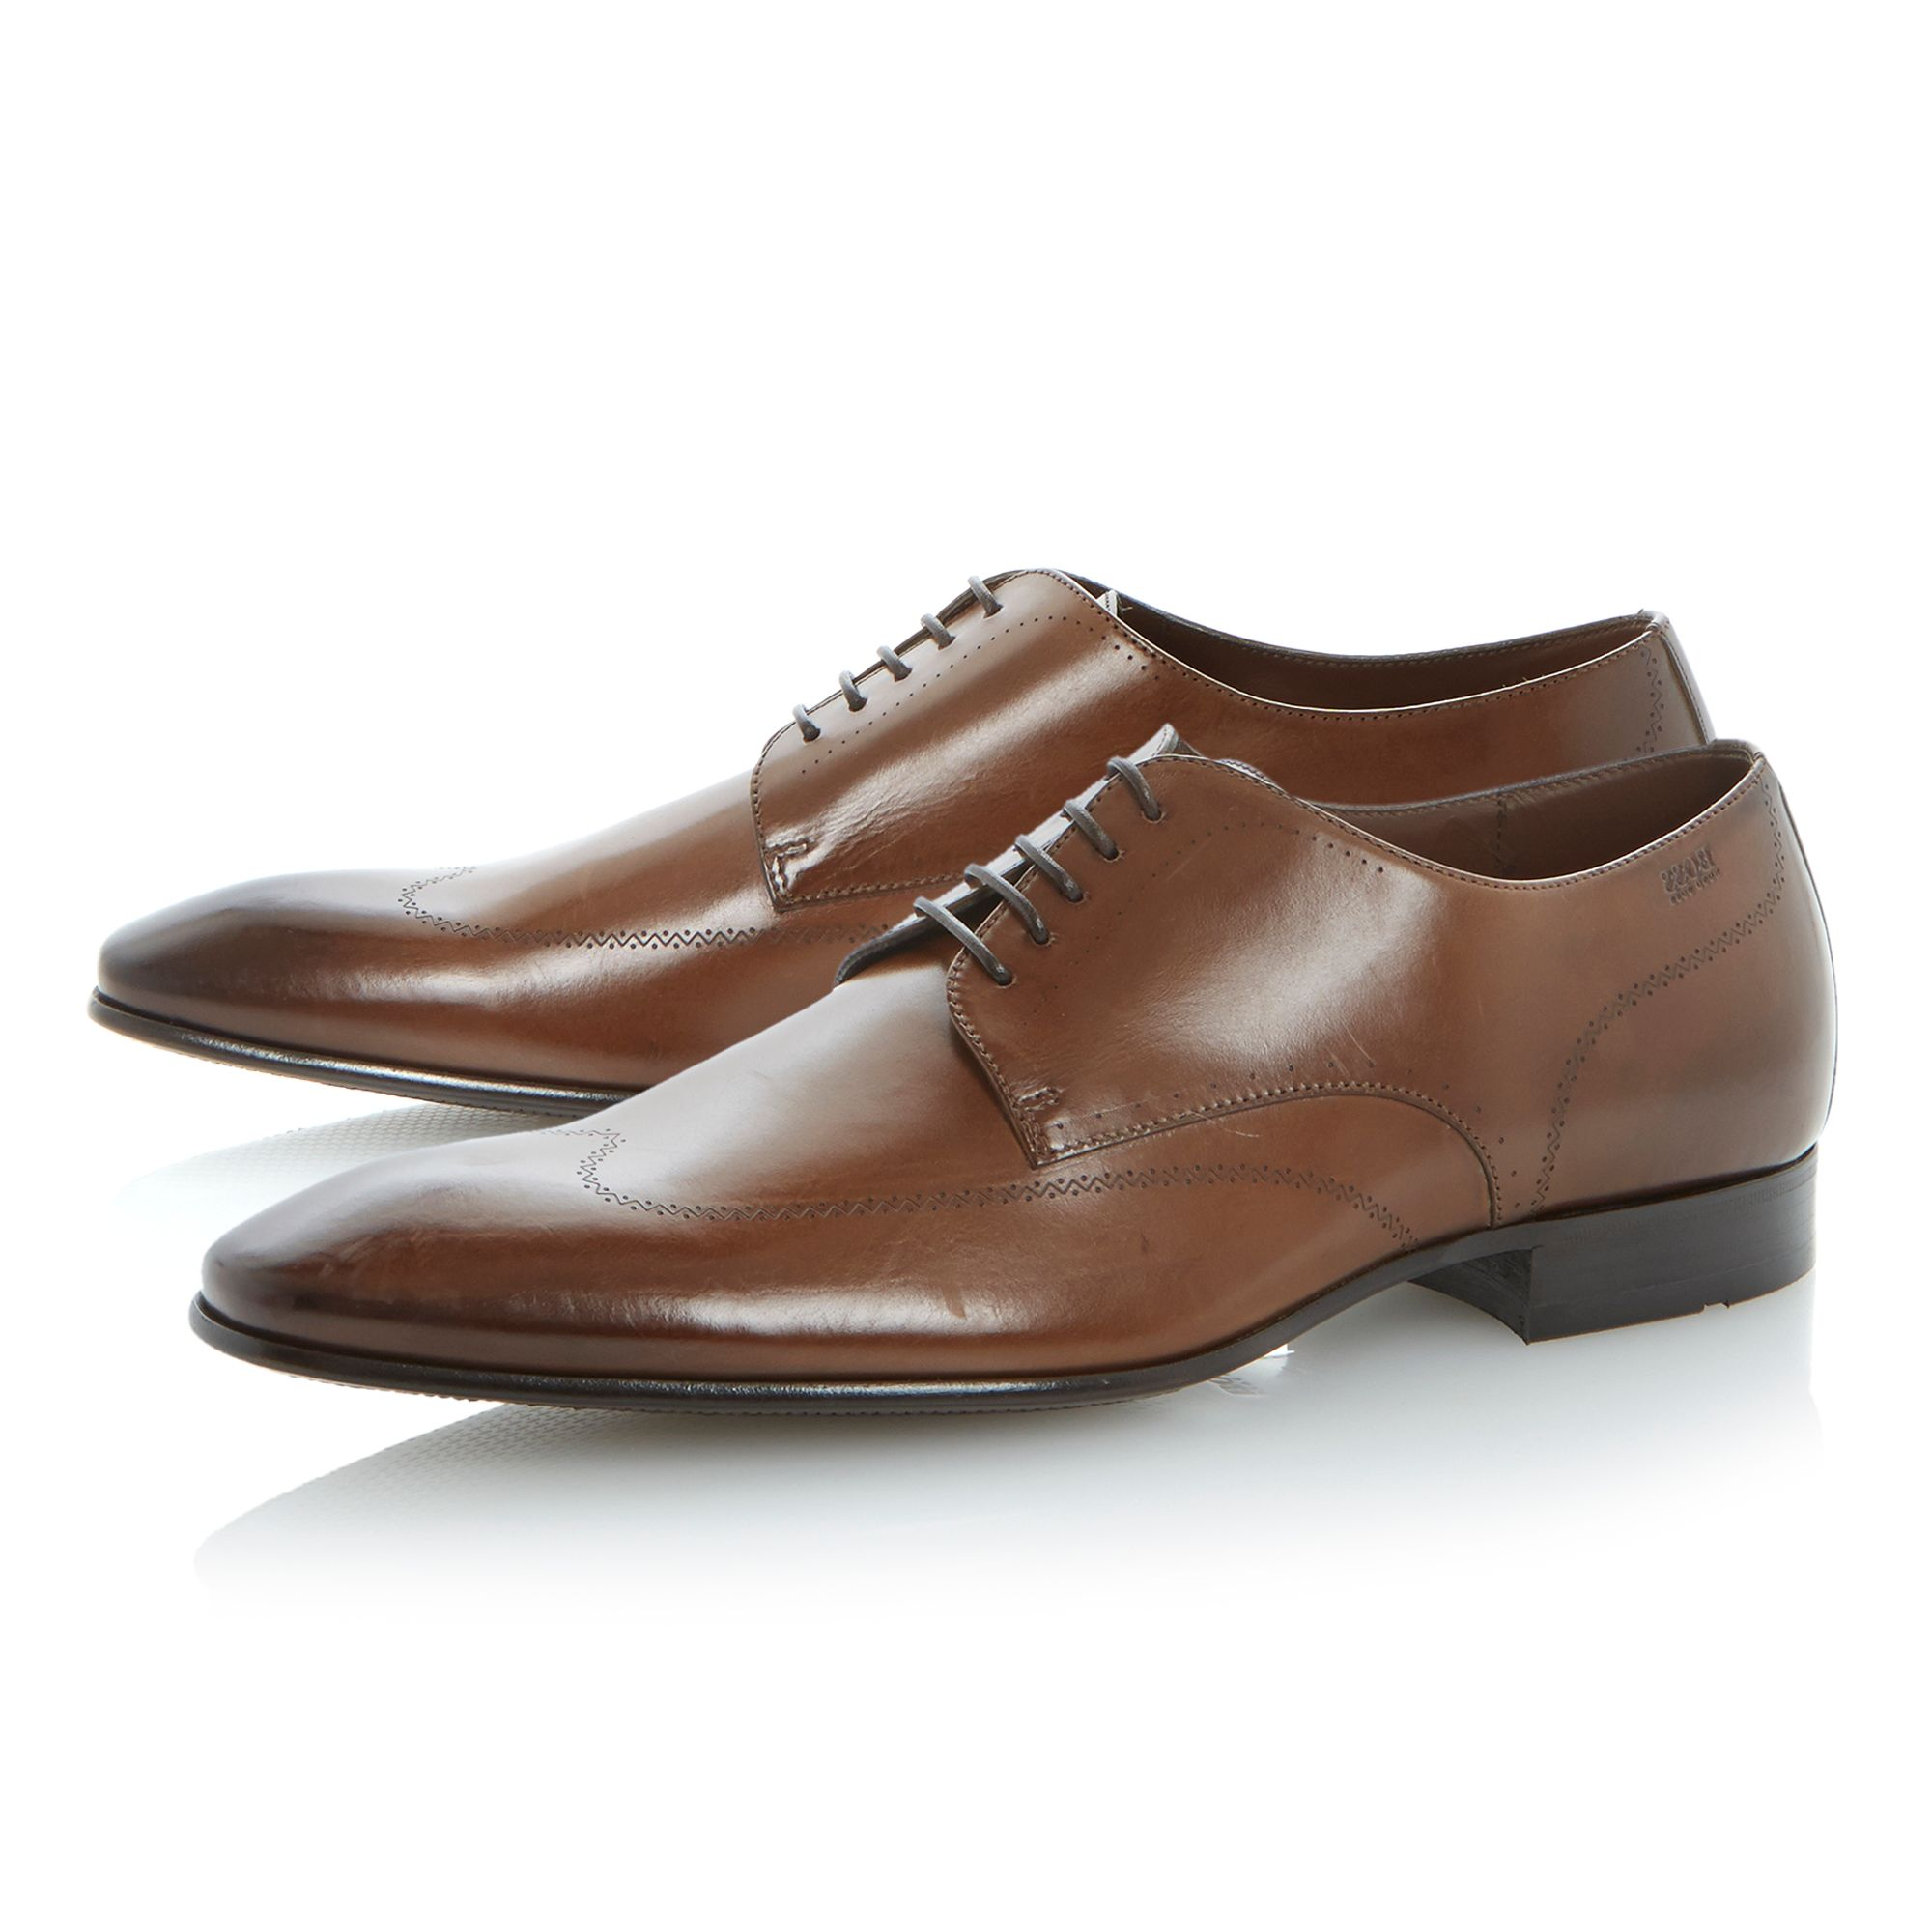 Cilstes lace up formal shoes